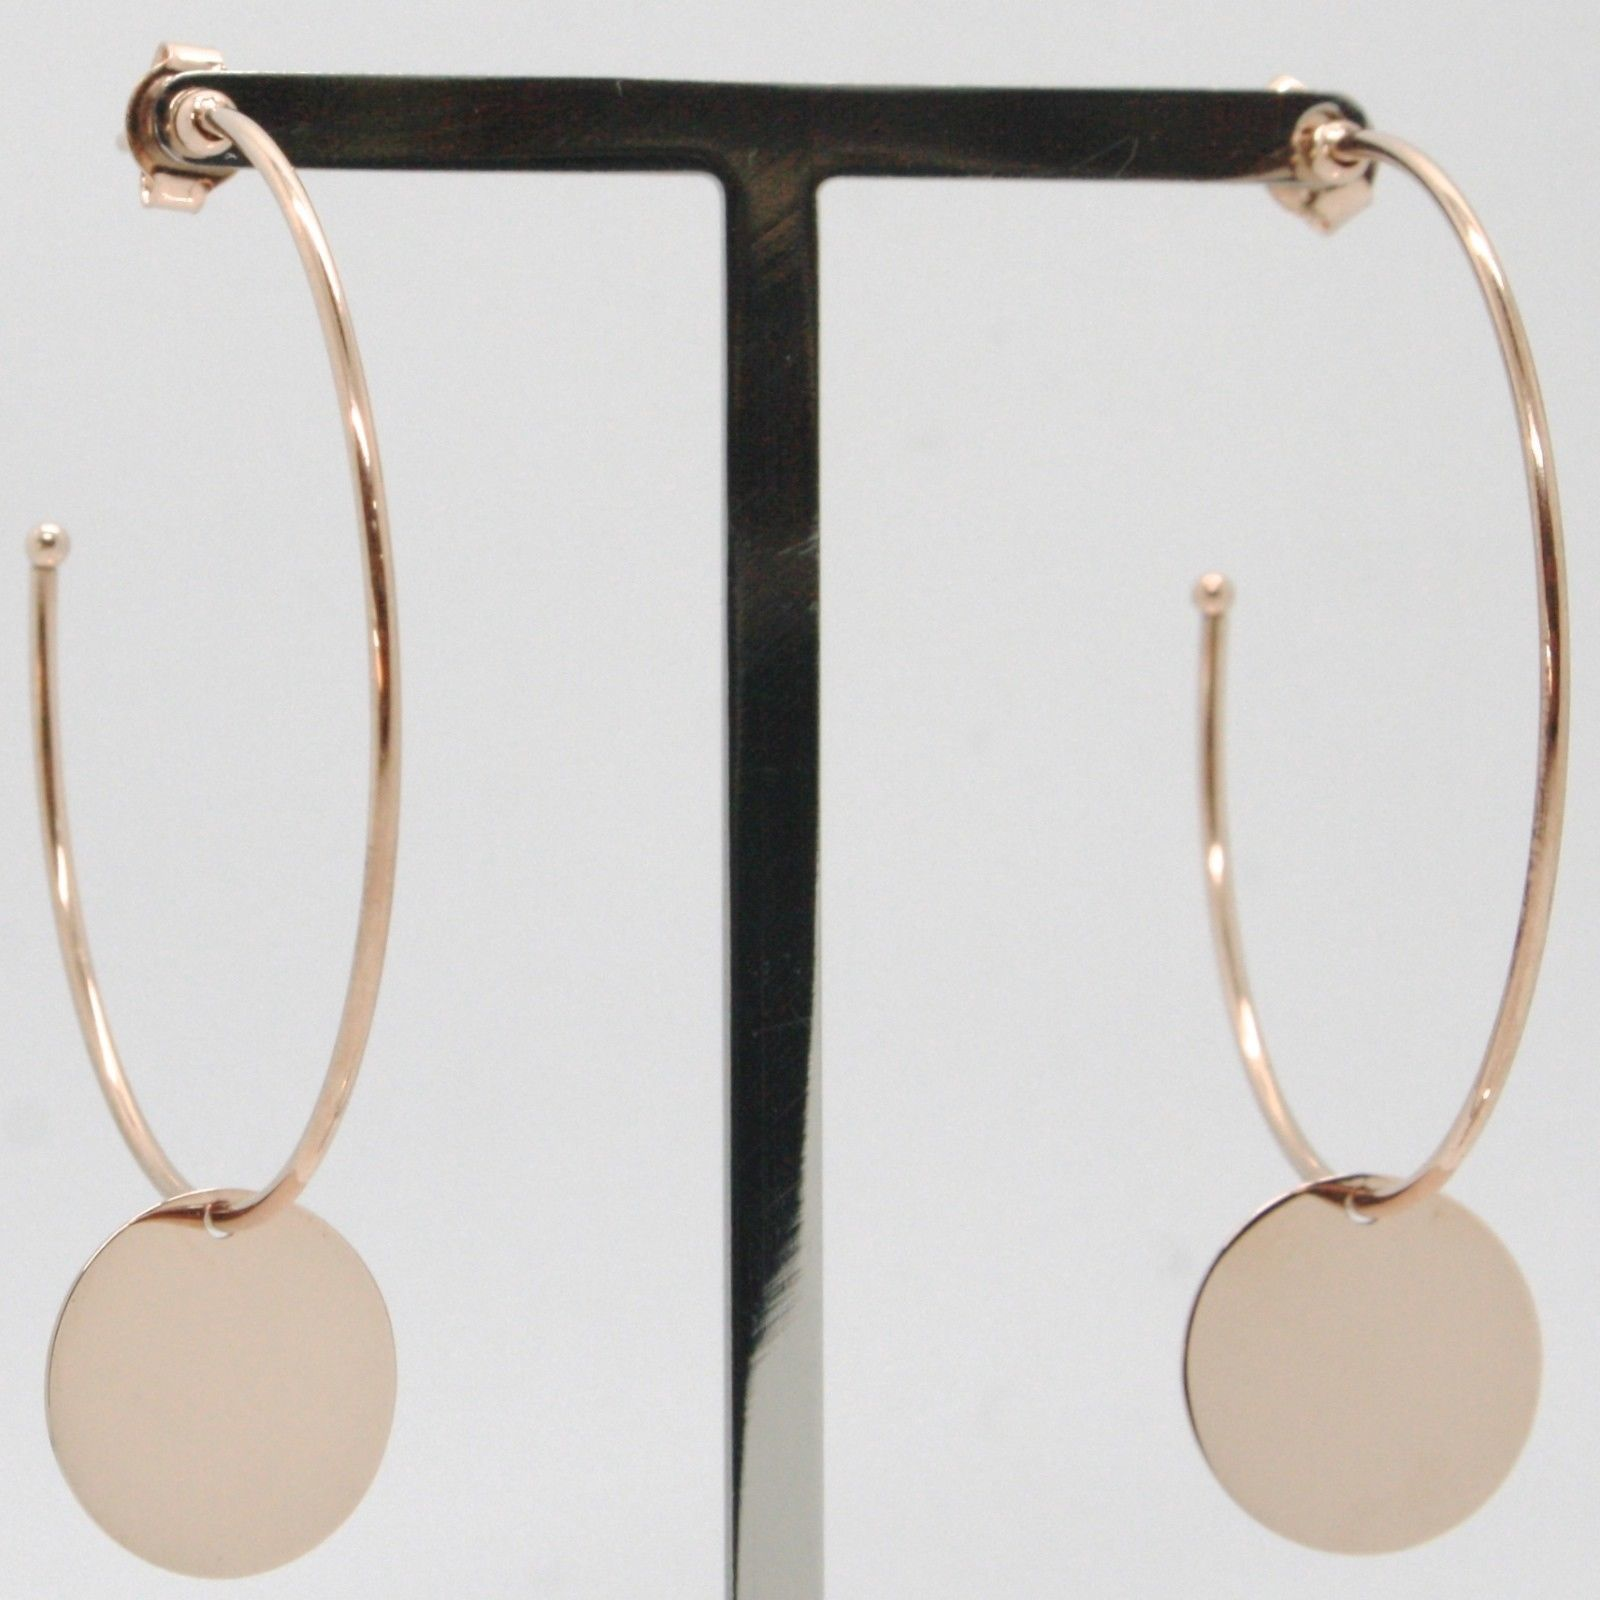 18K ROSE GOLD PENDANT CIRCLE HOOPS EARRINGS WITH FLAT DISC, SMOOTH MADE IN ITALY